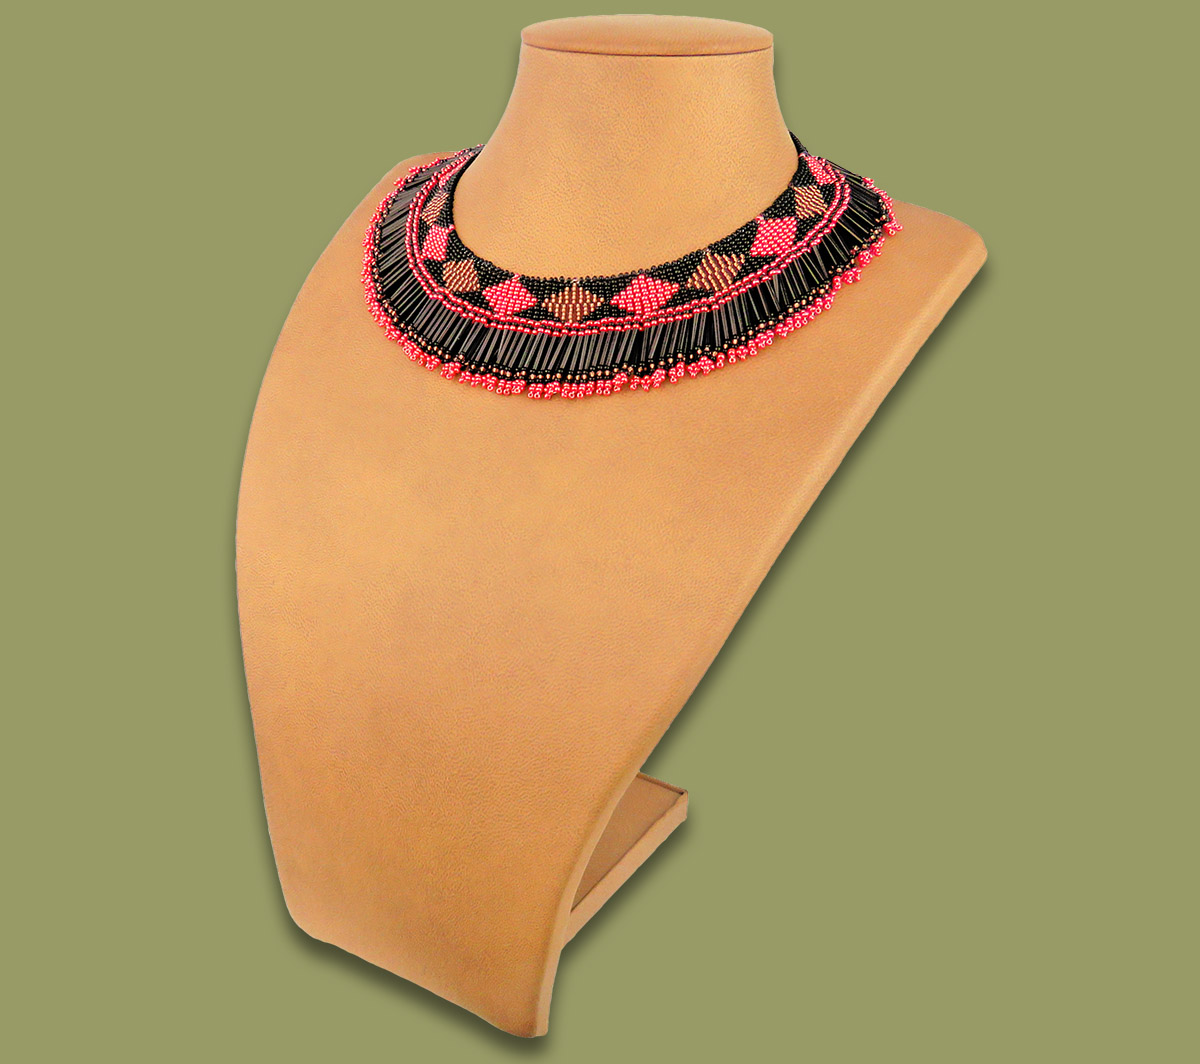 African Beaded Necklace Thandi Pink Copper Black